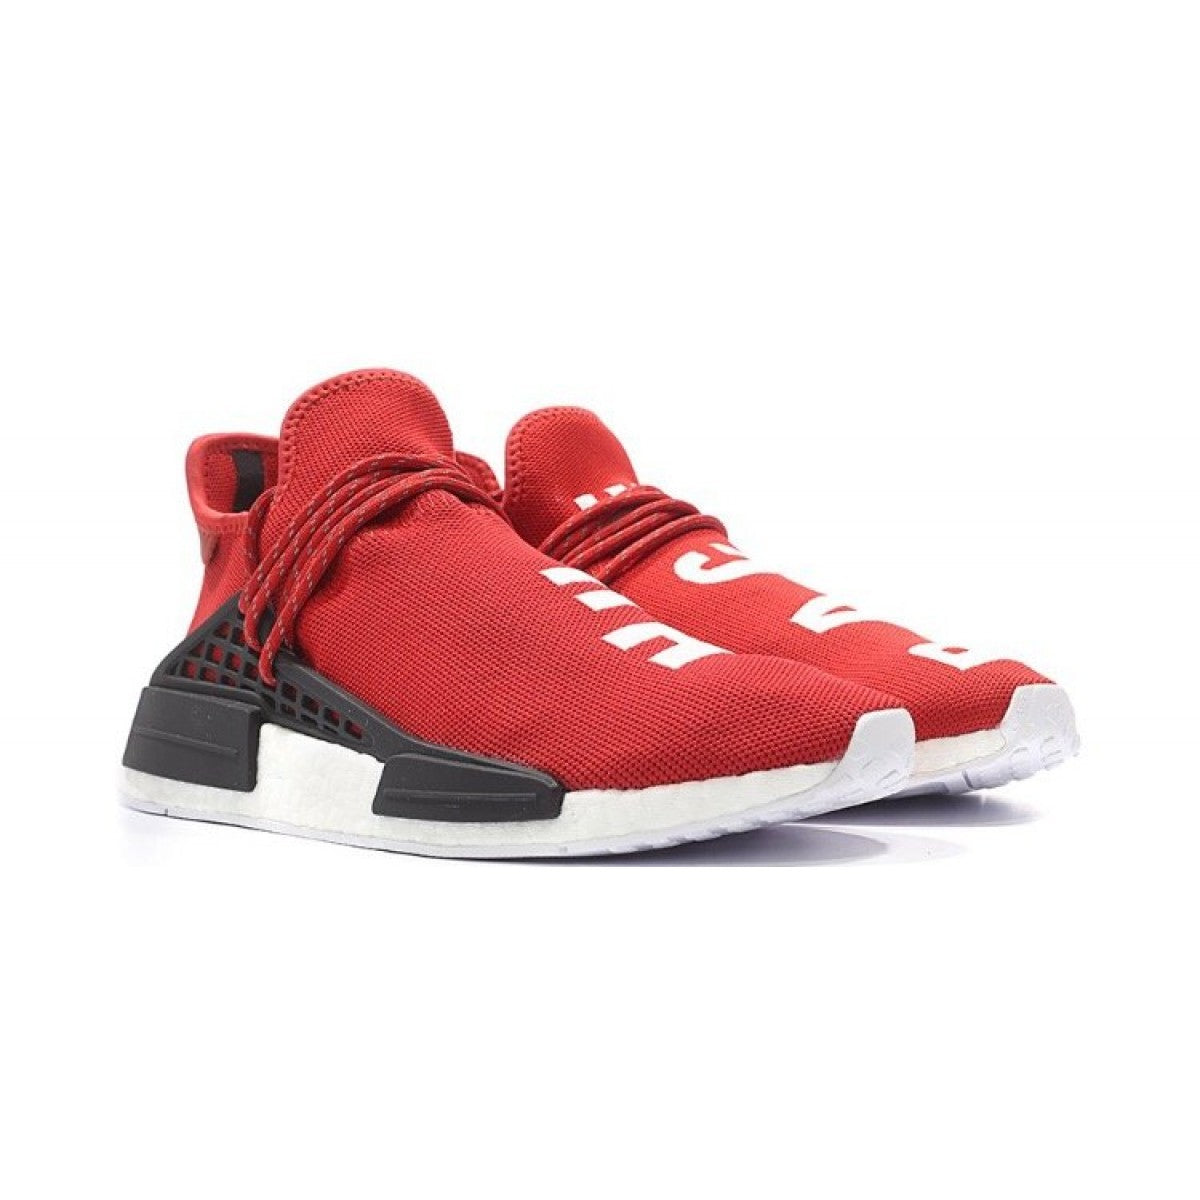 Pharrell Williams X Adidas Human Race NMD 'Red'